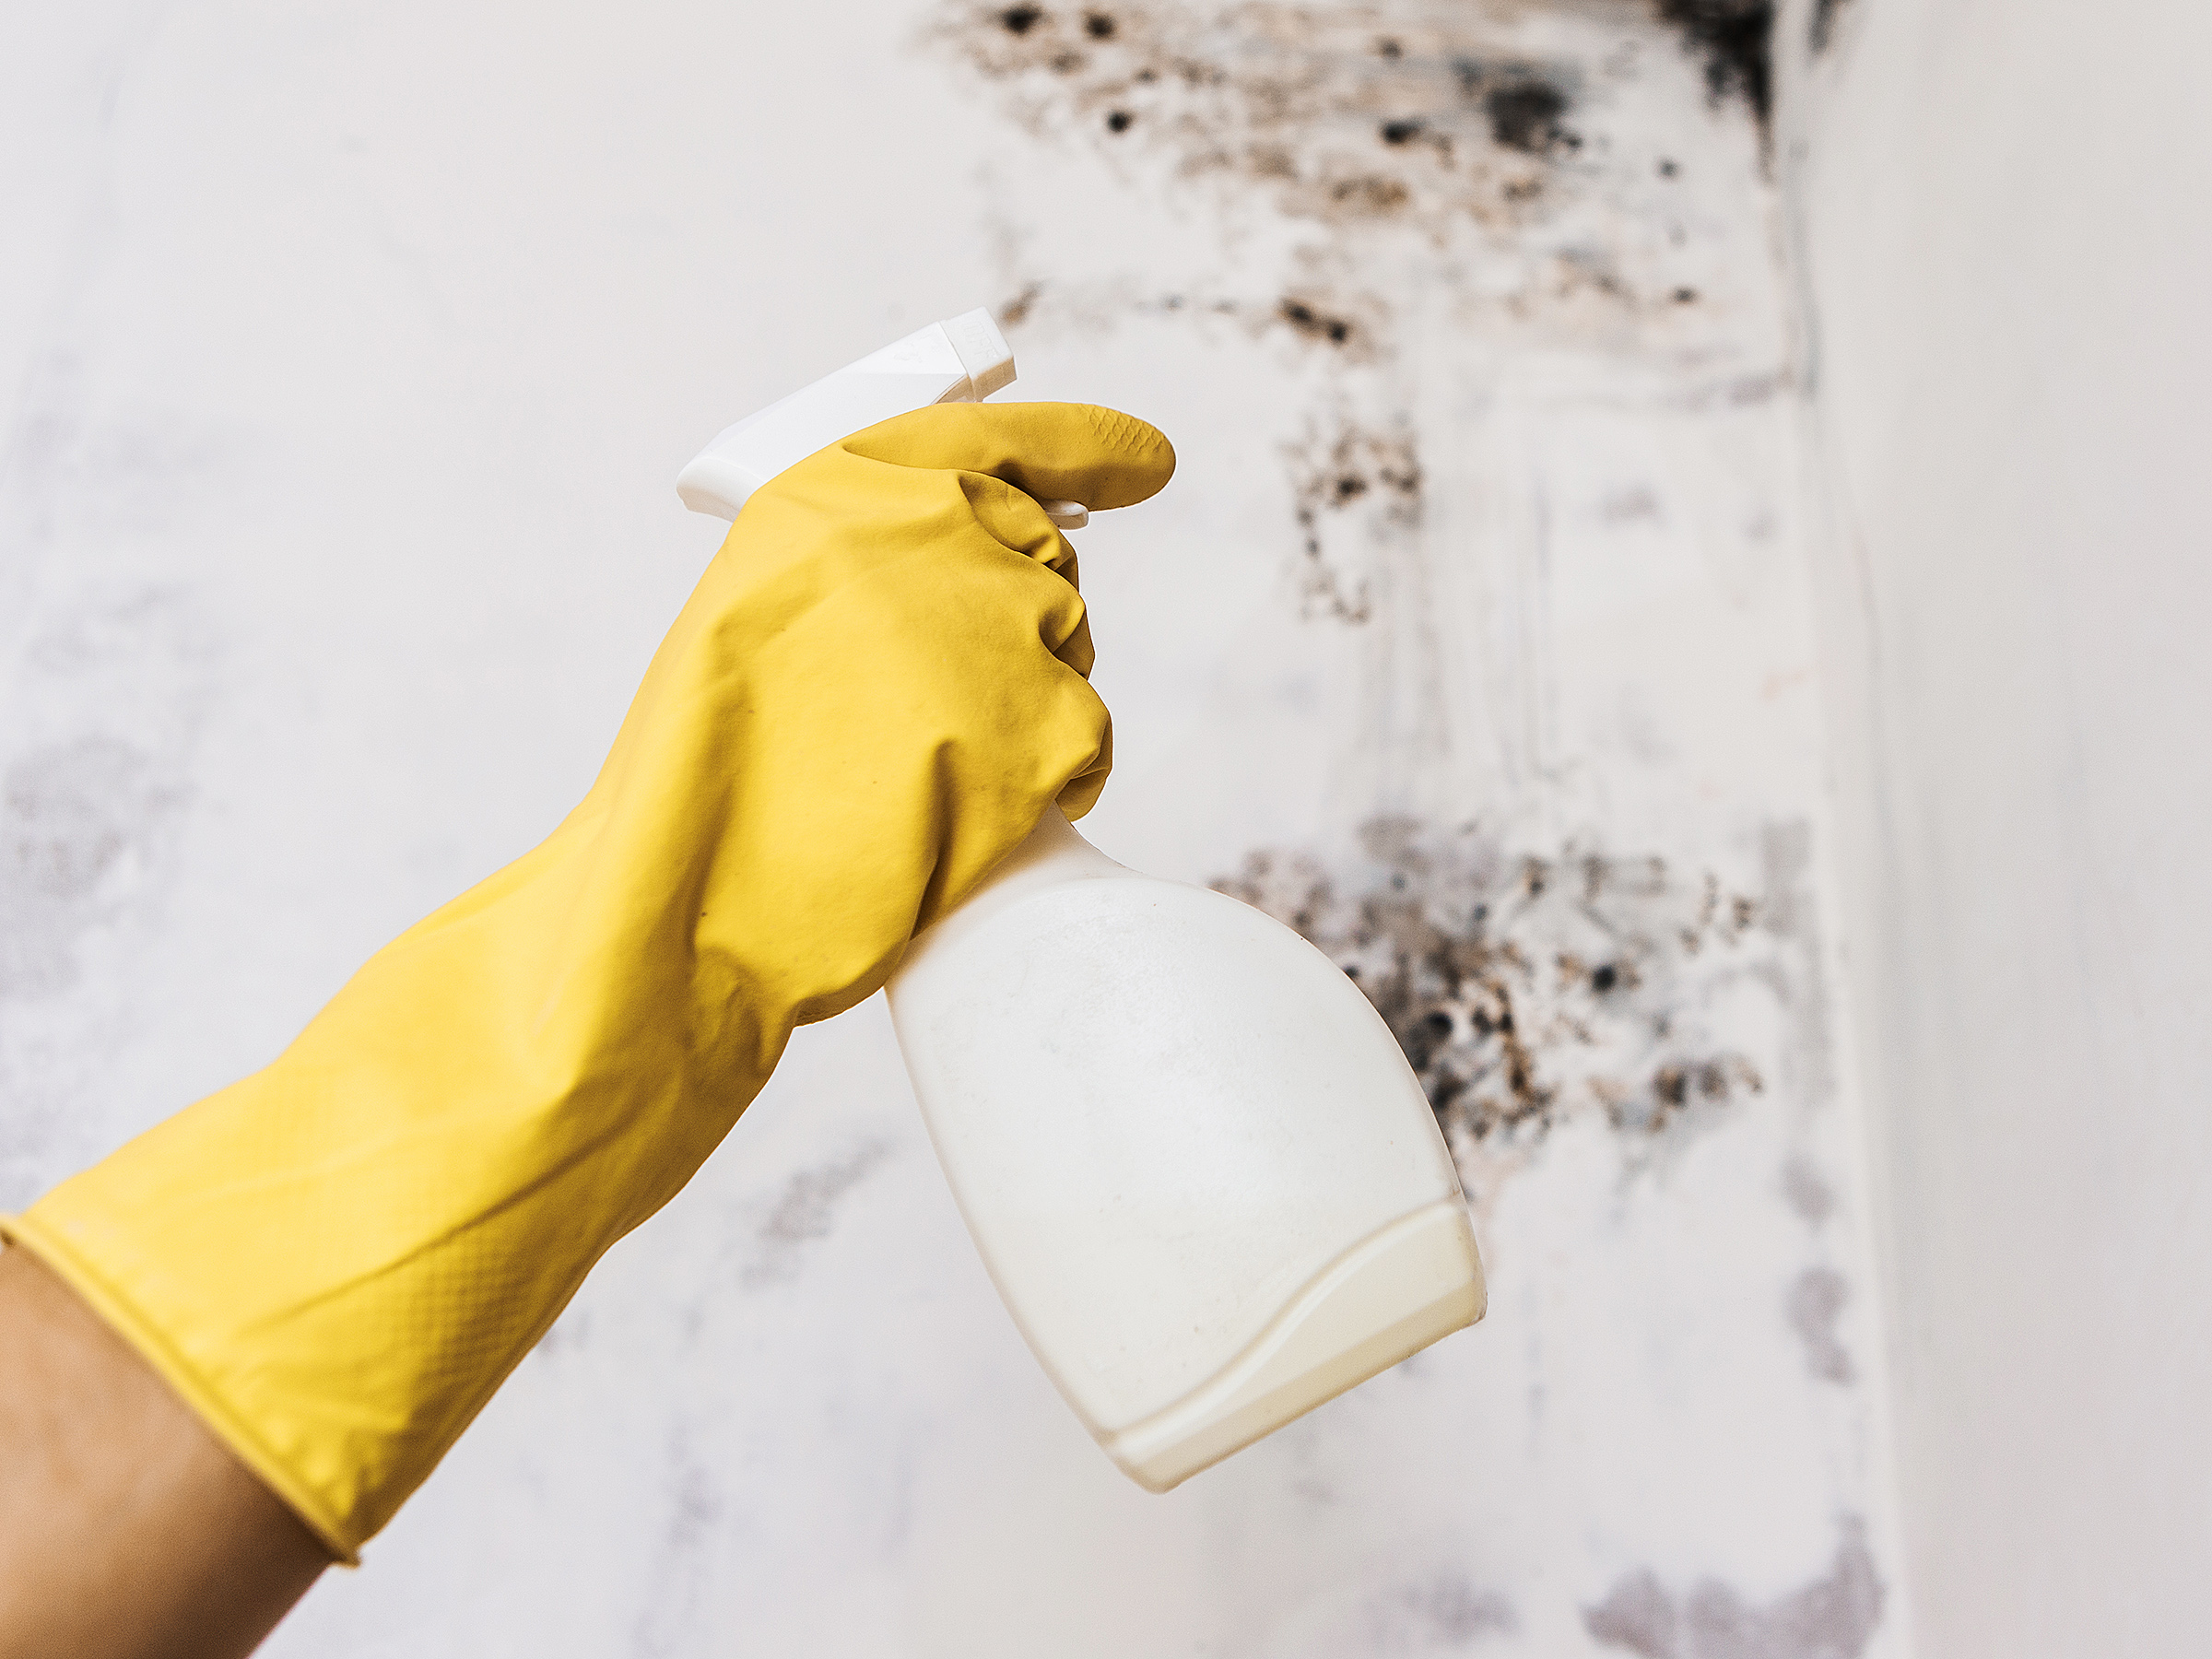 yellow rubber-gloved hand holding spray bottle in front of moldy/mildew wall